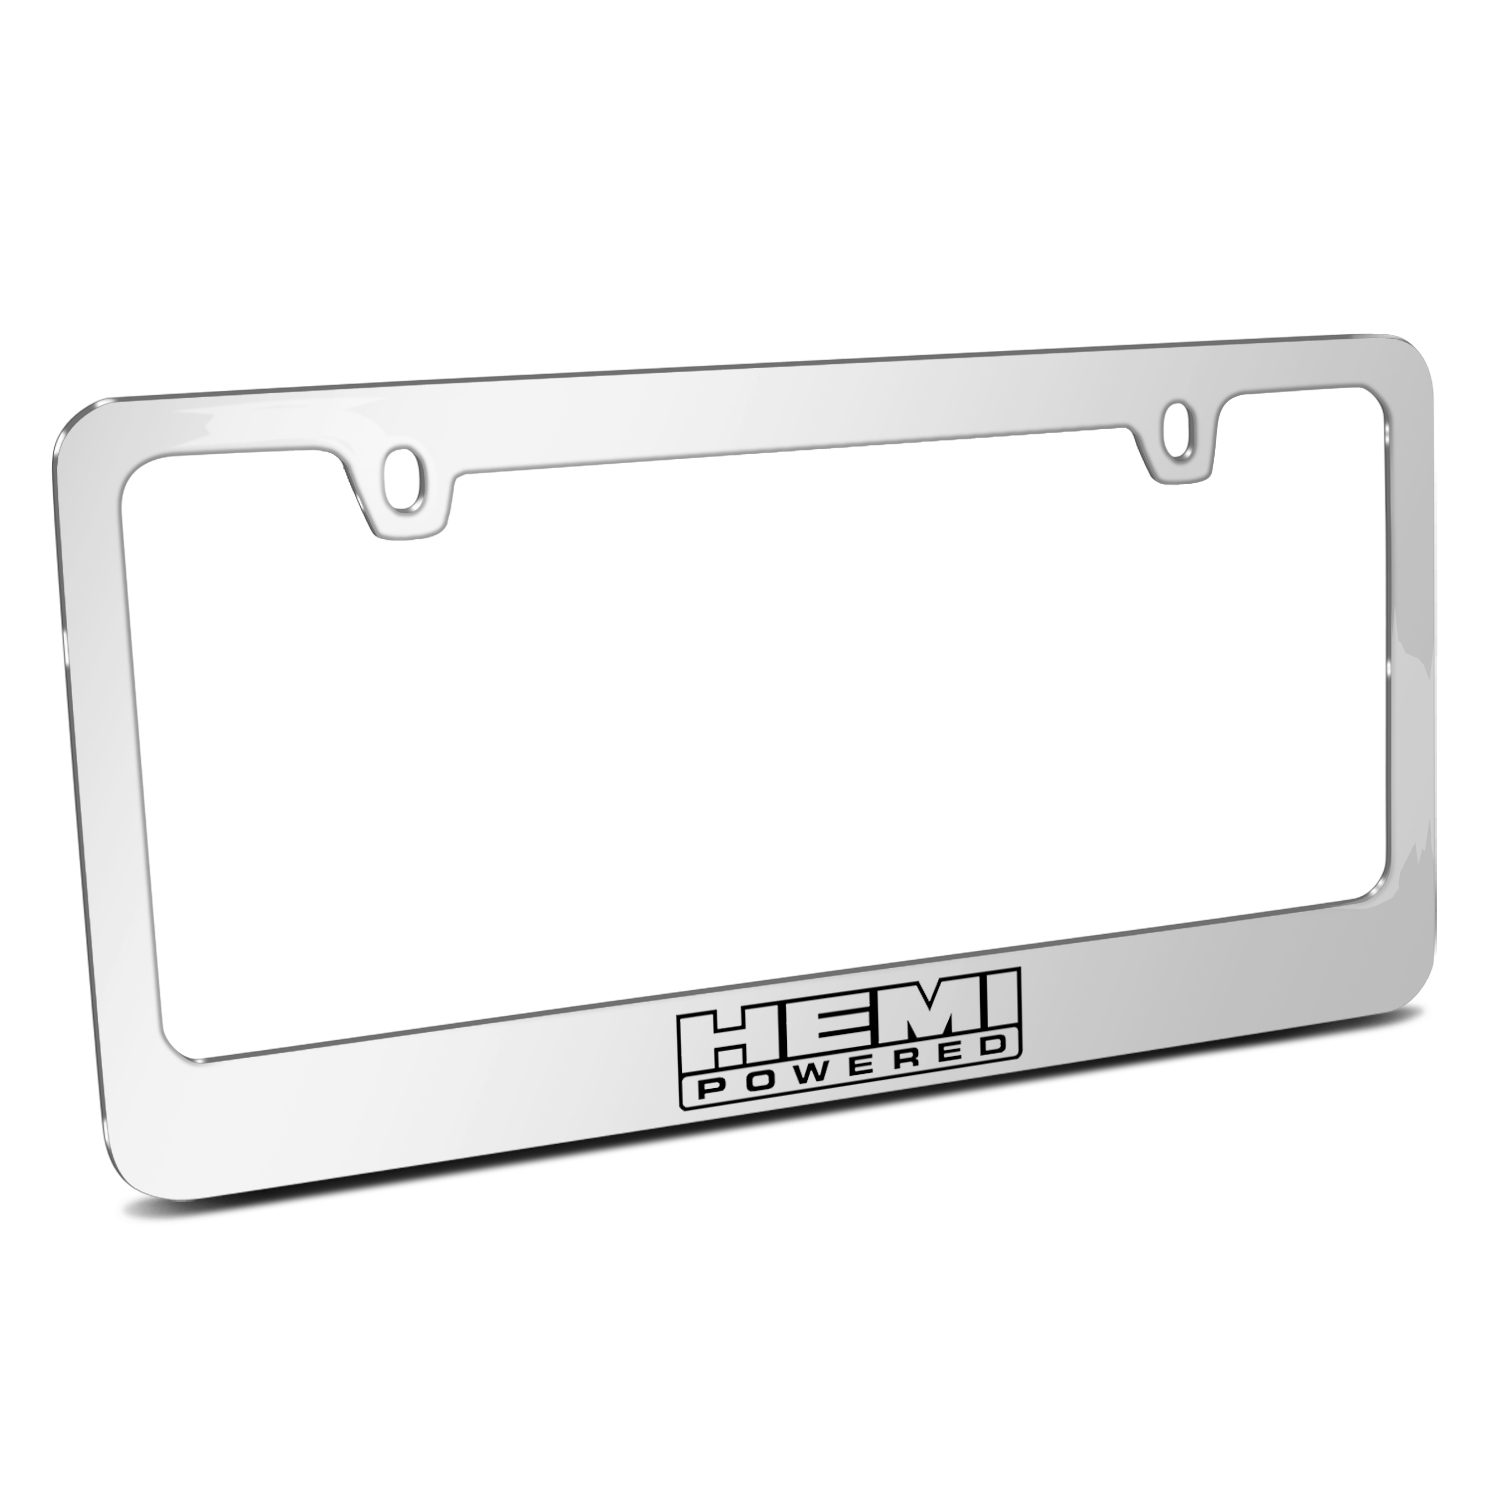 HEMI Powered Mirror Chrome Metal License Plate Frame